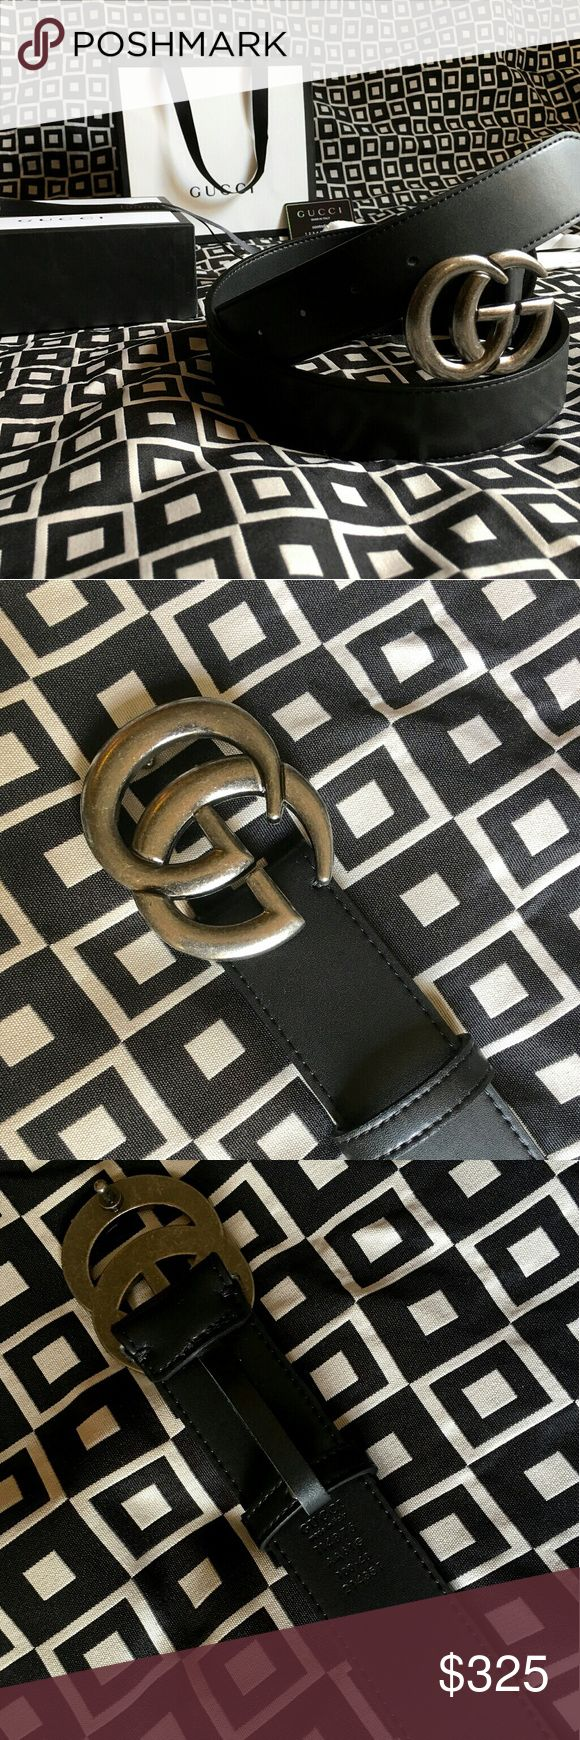 """Gucci GG Belt!!! Gucci GG Belt W/ Antique Silver Double G Buckle!!!  Brand New!!!  Size Available - 32"""", 34"""", 36"""", 38"""", 40"""", 42"""", 44""""!!!  Includes Gucci Belt, Gift Box, Dust Bag, Ribbon, Etc!!!  Great Gift Idea!!!  Last Available!!!  Check My Listings For Other Great Items!!!             Ignore: Gucci gg monogram casual dress belts men's women's guccissma leather monogram web tiger bee embossed panther wool cable knit blooms supreme print angry cat ufo dragon studded snake double g Gucci…"""